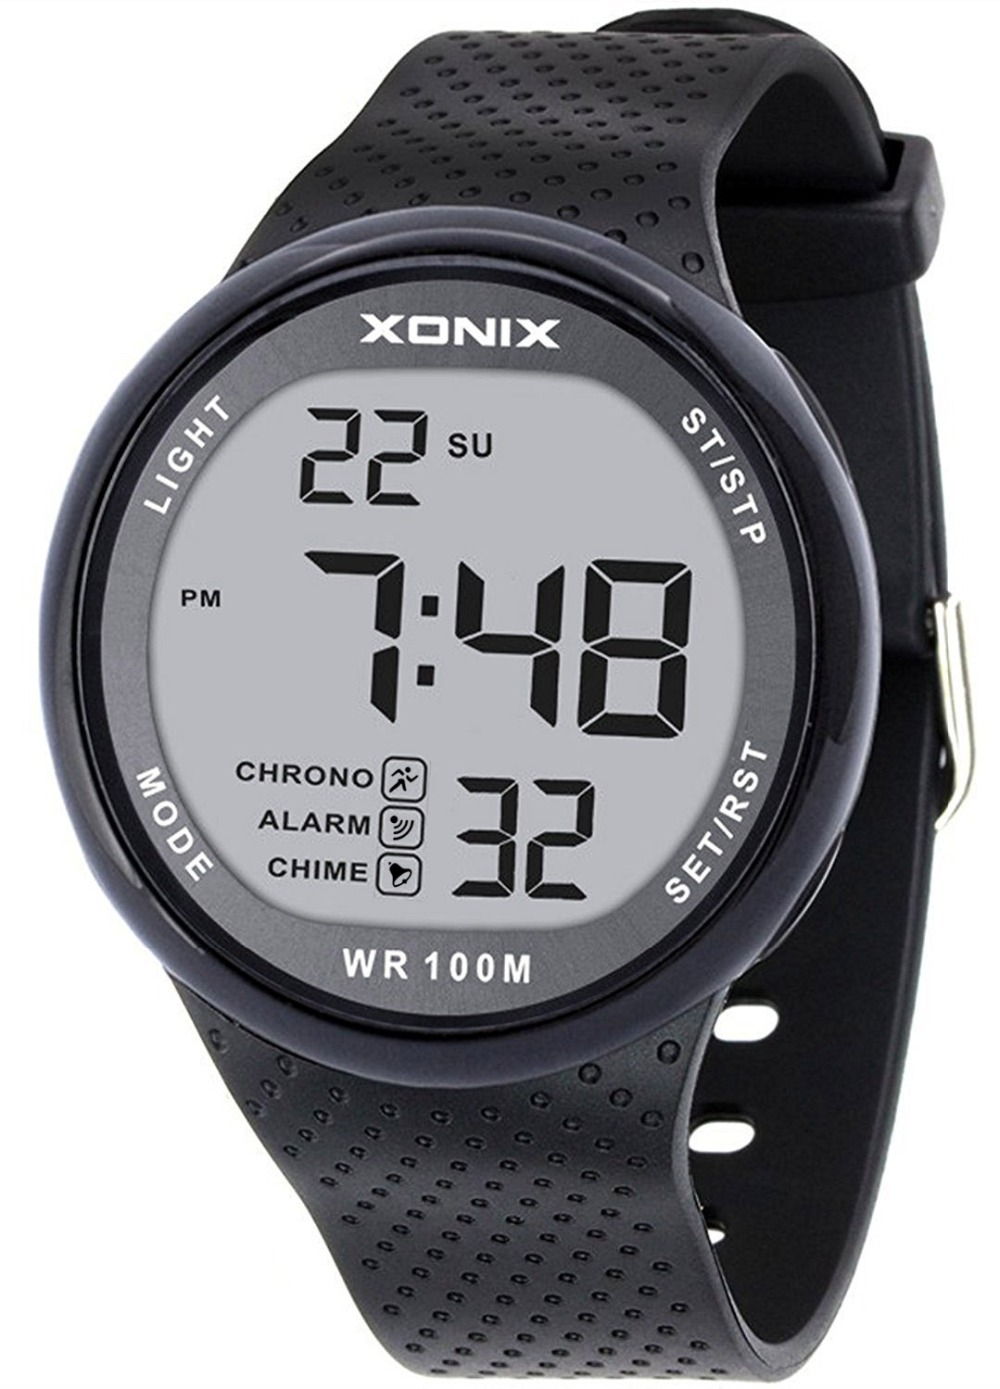 TOMORO Vogue Men's 100M Waterproof Sports Black Resin Large Digits Digital Dive Watch (Can Be Pressed Underwater)